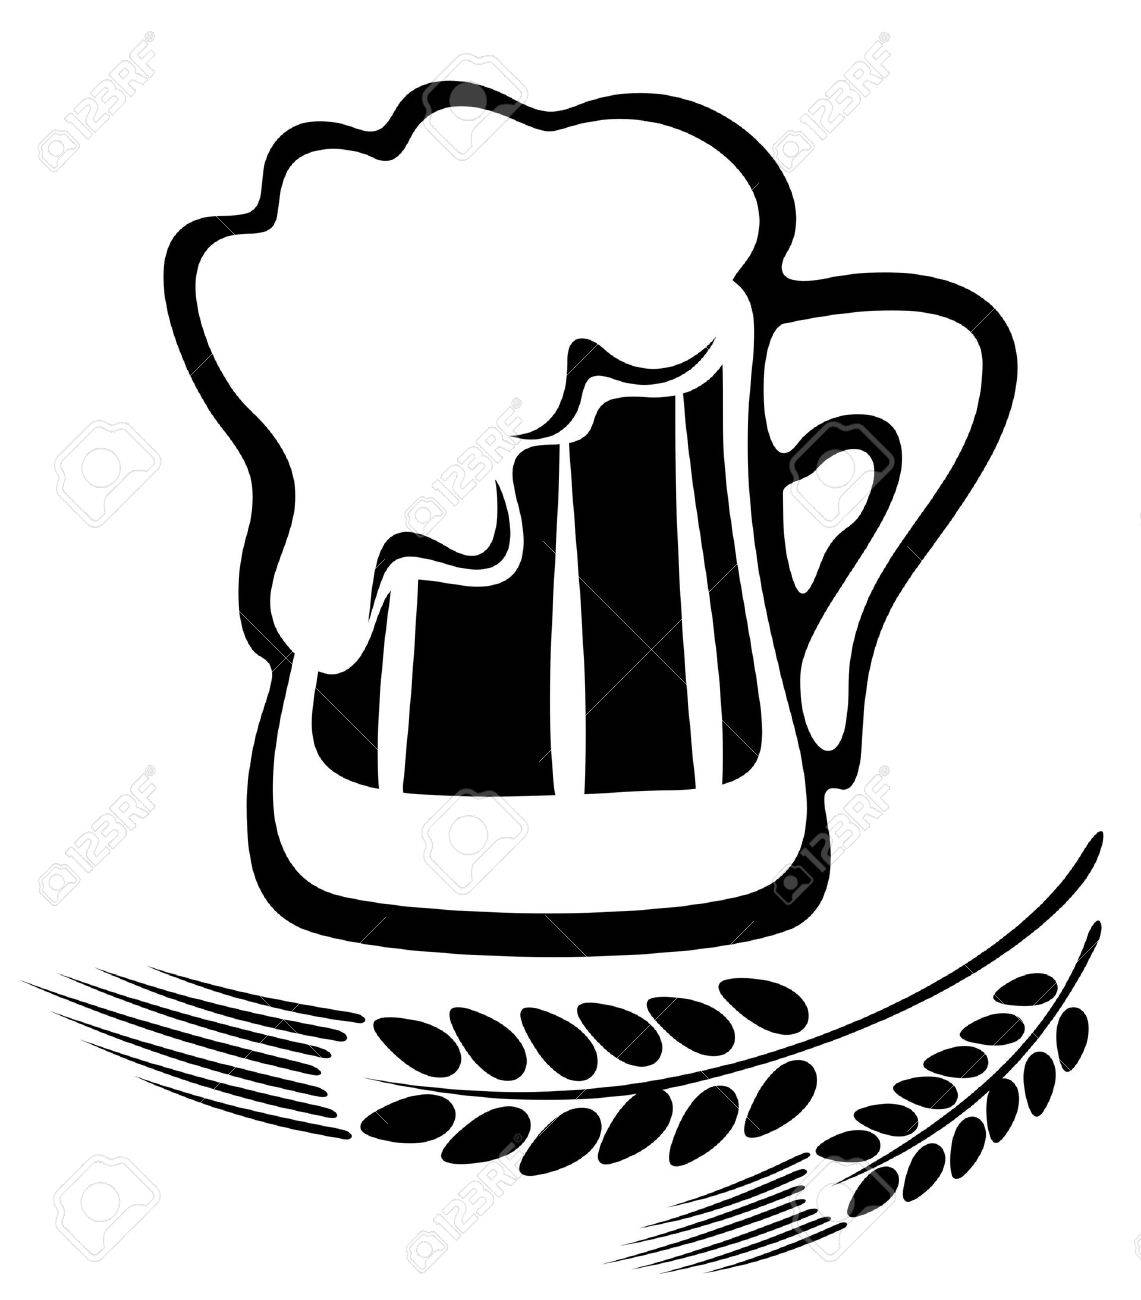 Stylized beer mug and ears isolated on a white background. Stock Vector - 5221983